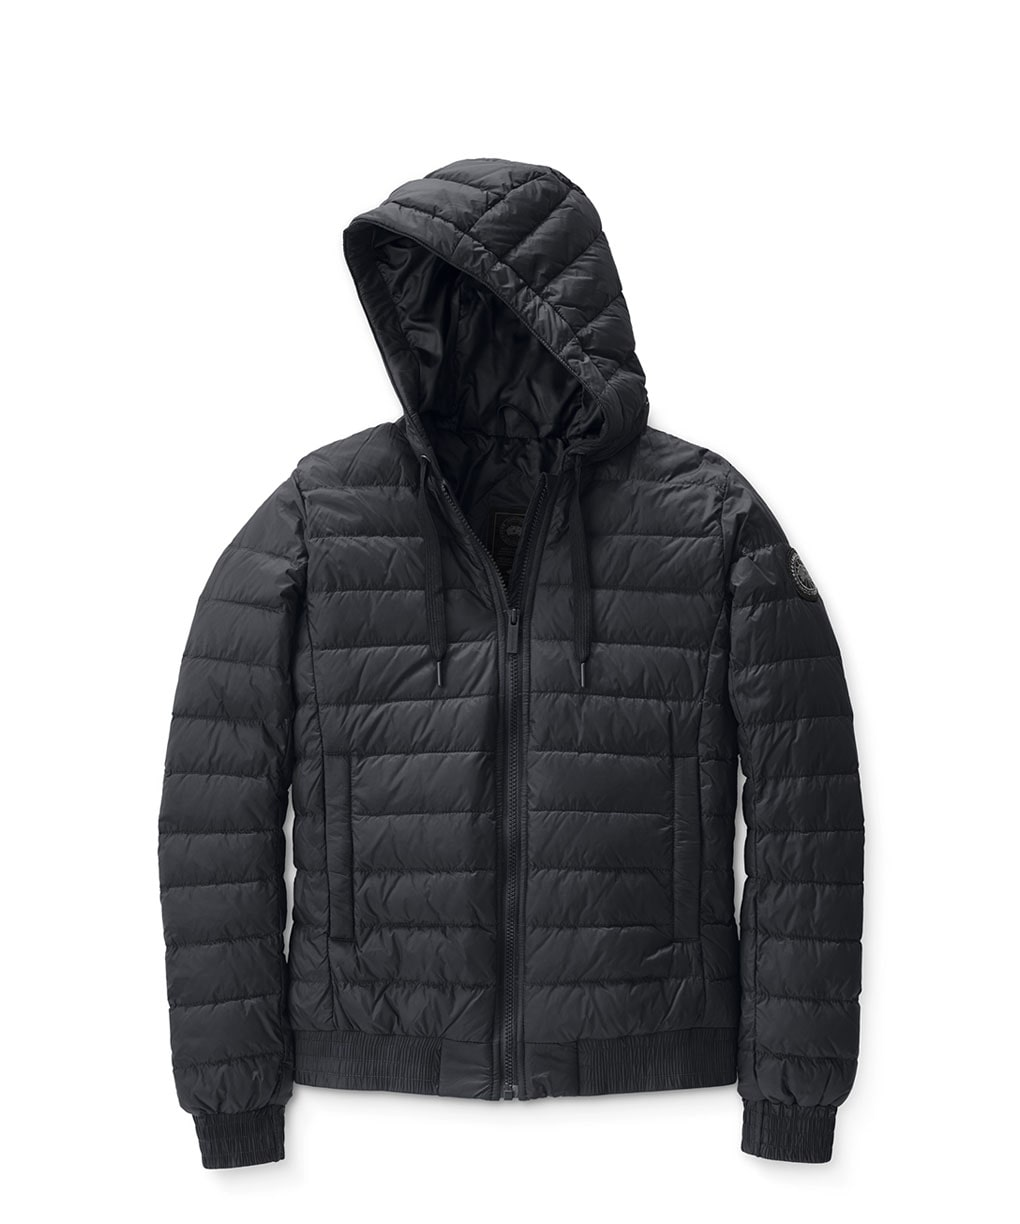 RICHMOND HOODY BLACK LABEL